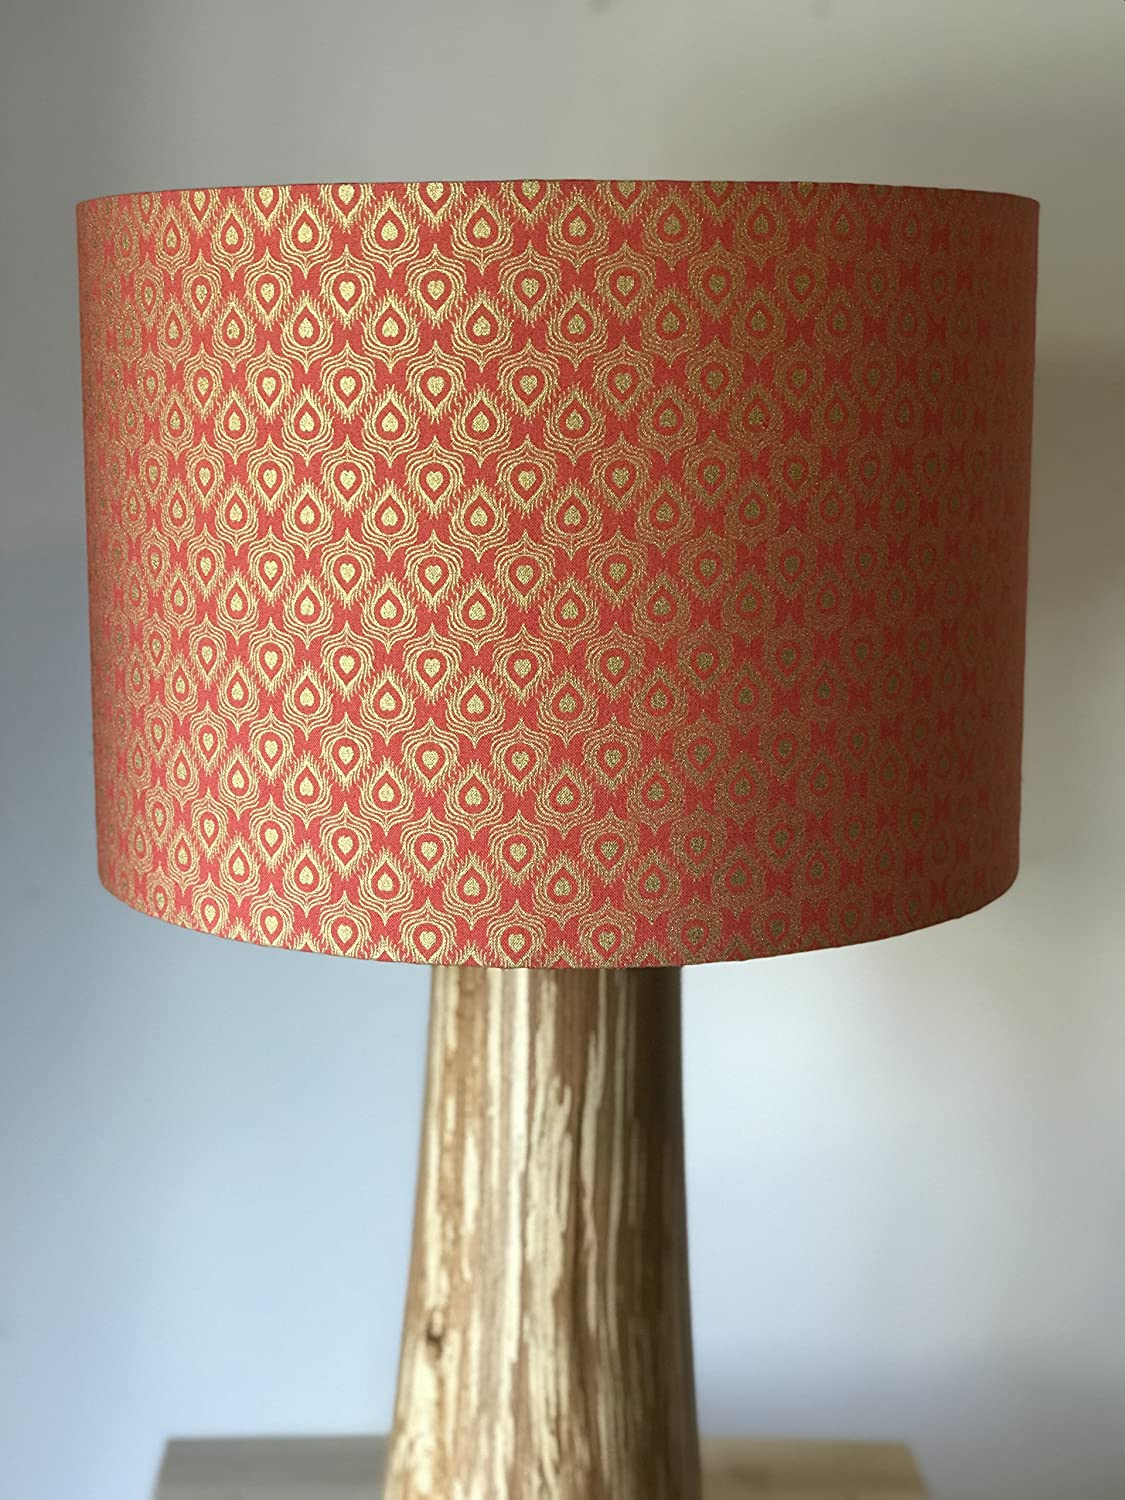 Terracotta and Gold Peacock Feather Style Drum lampshade